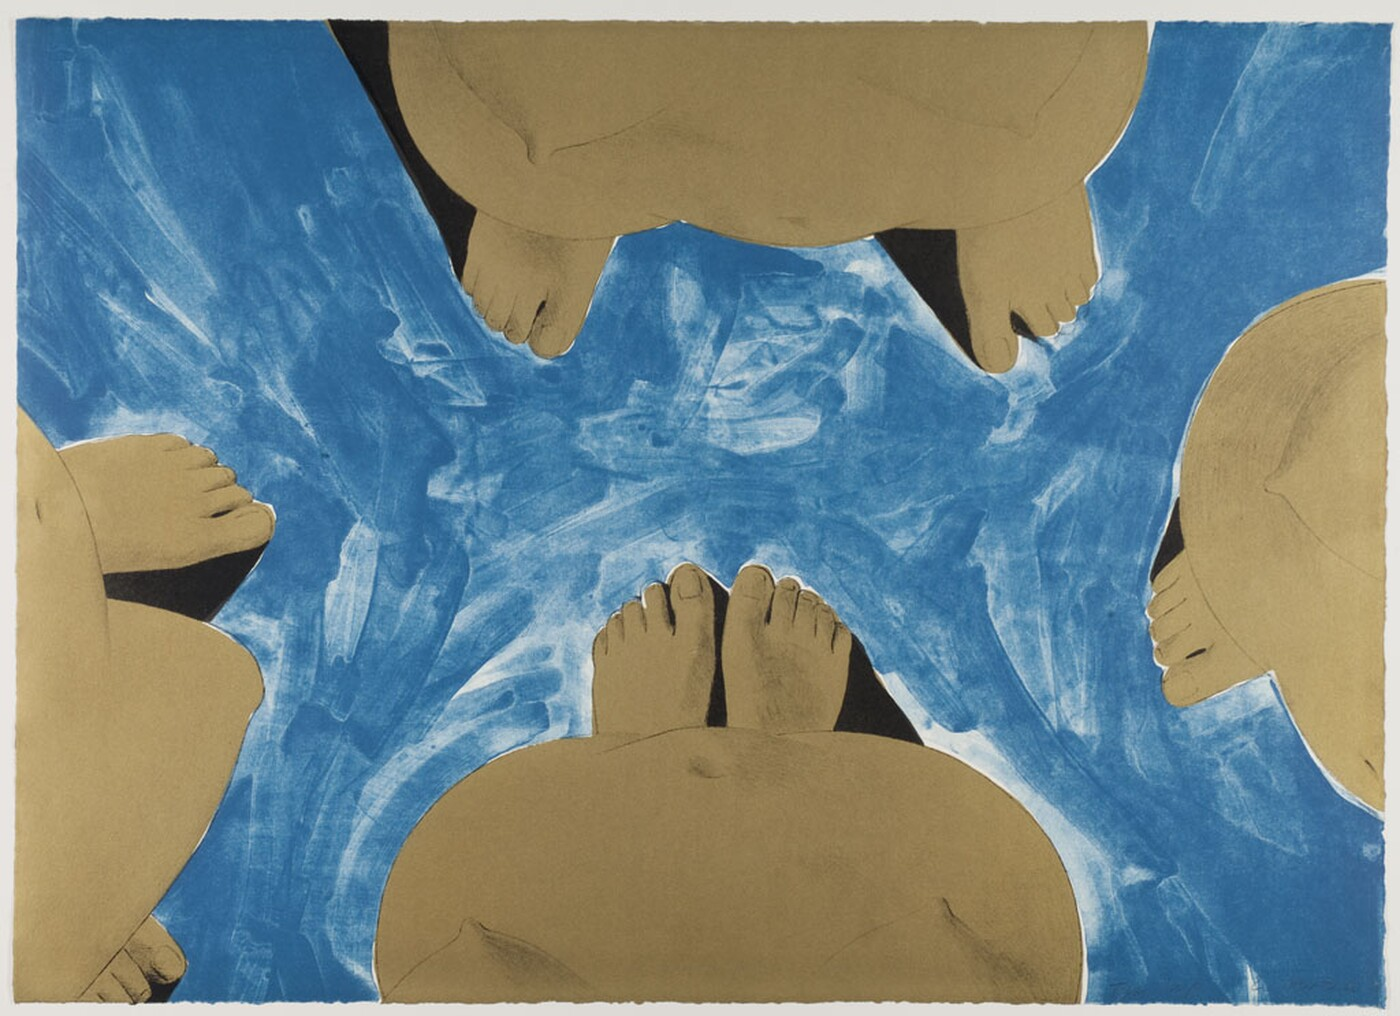 Four stylized bodies are depicted around the perimeter of the work. The bodies are depicted from above, with pairs of feet jutting into the center of the work. In between the four bodies is a stylized blue field.